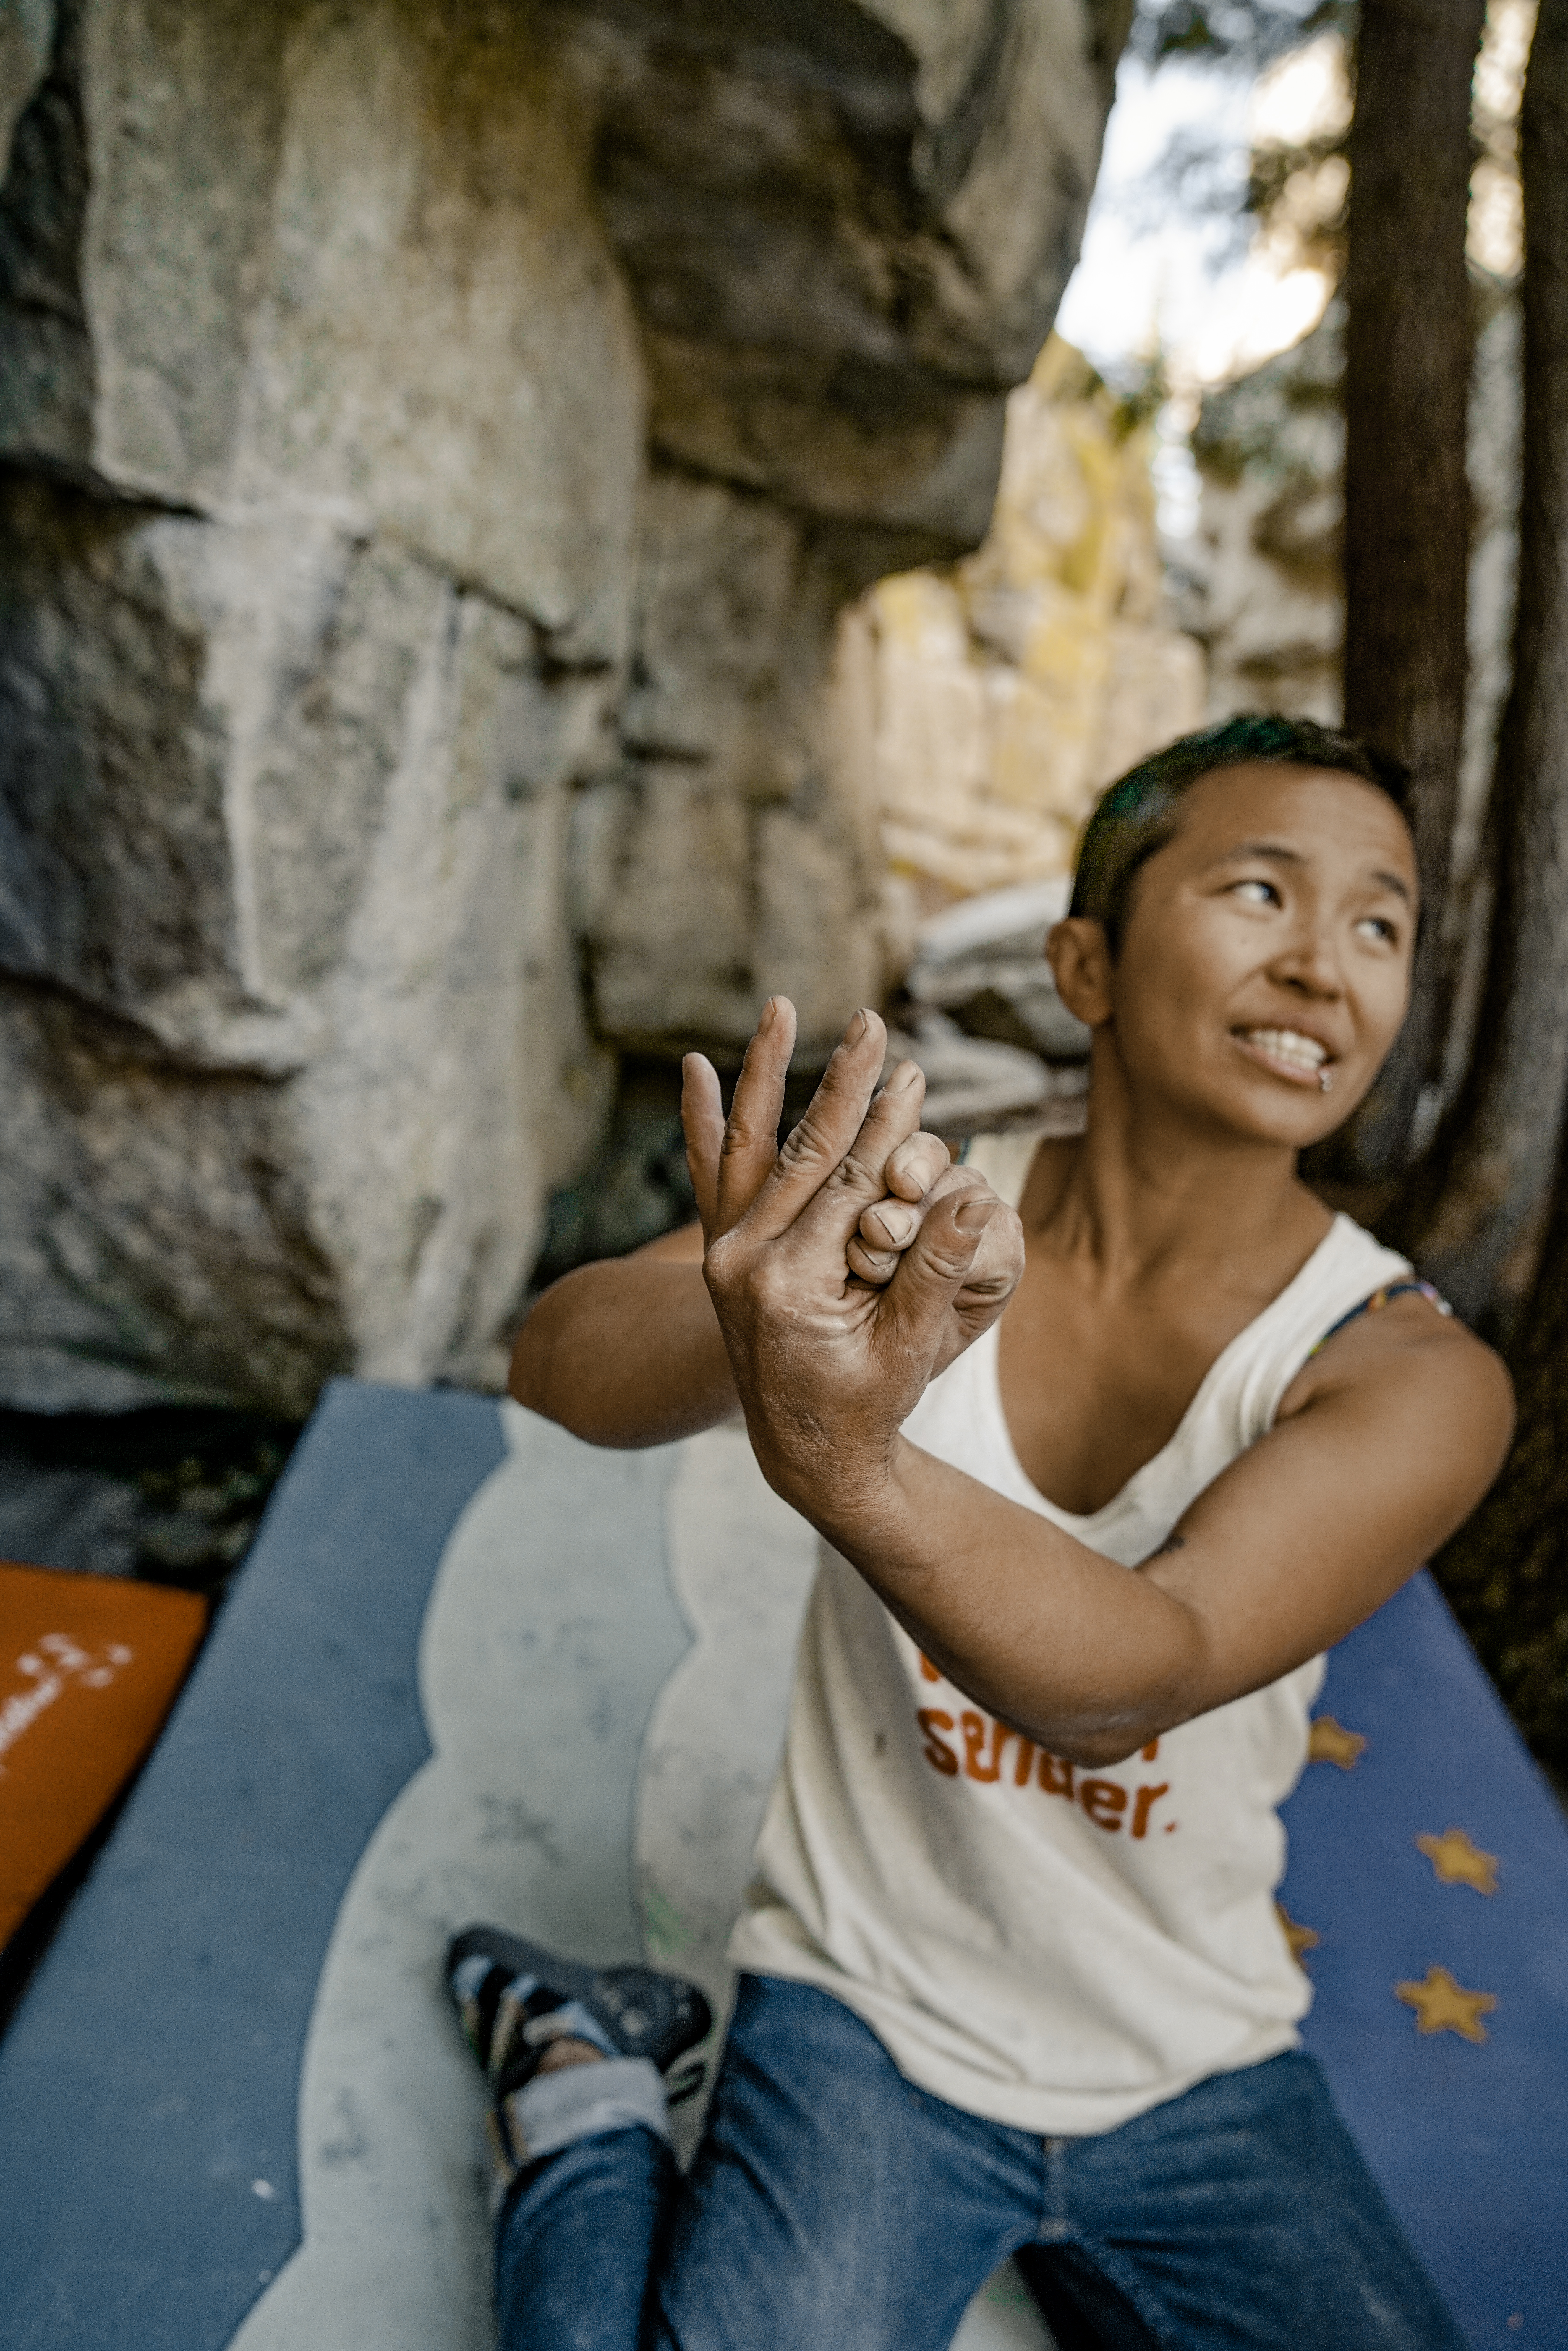 Narinda kneels on a crashpad beneath a granite boulder, using her hands to demonstrate wedging fingers into a crack.